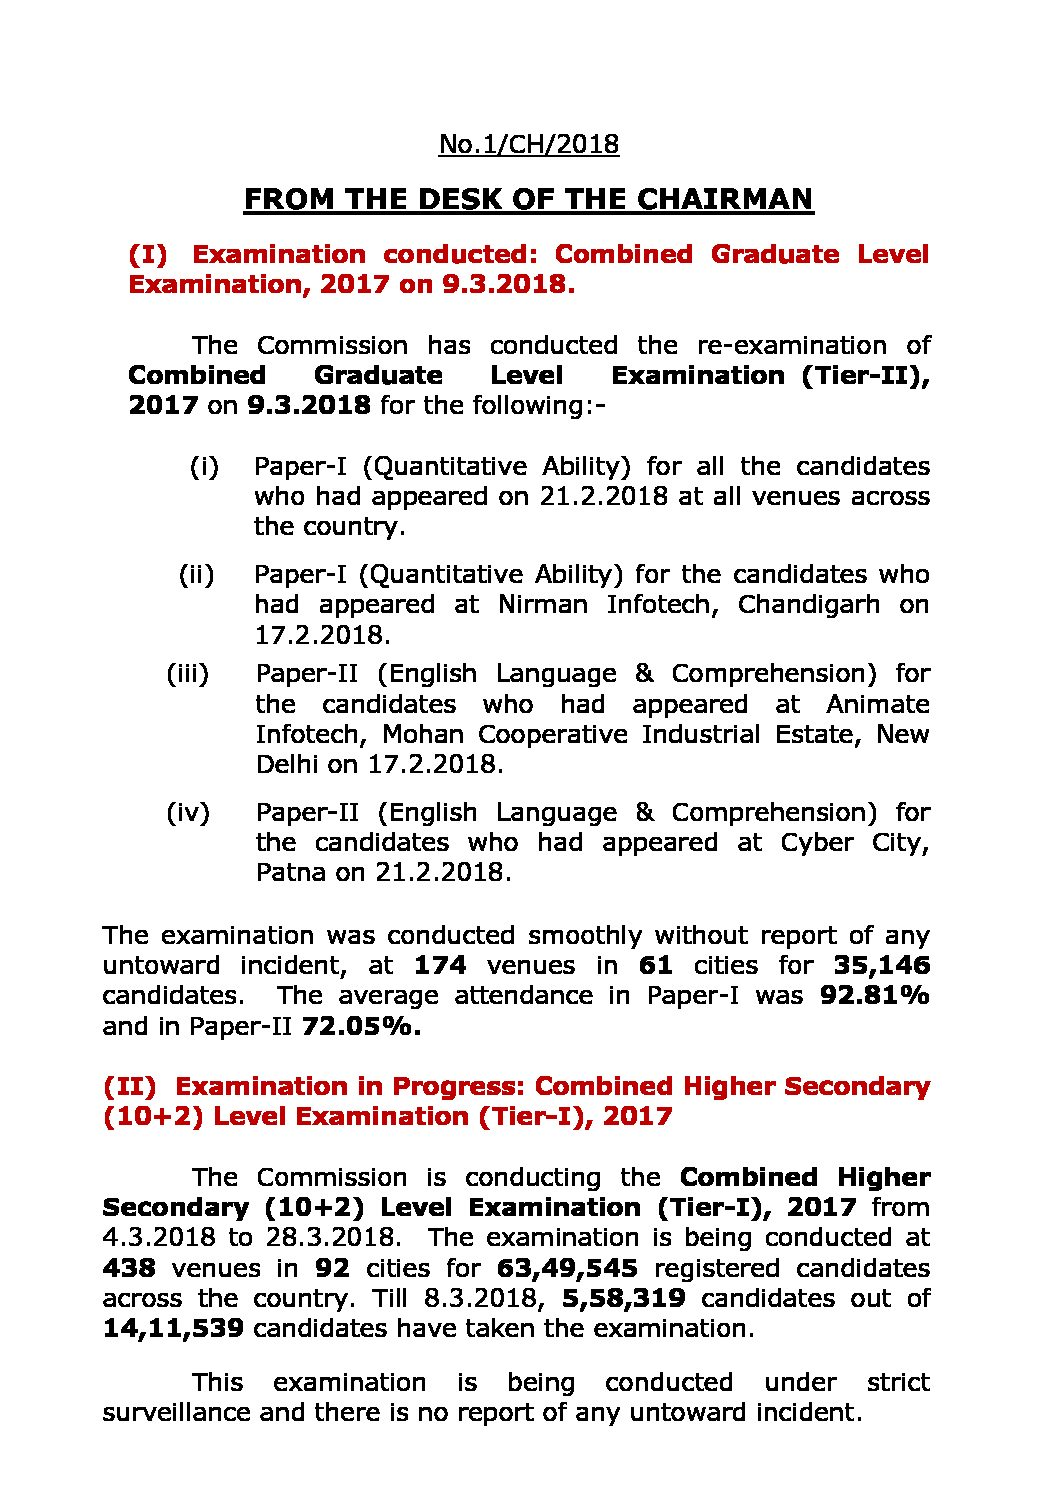 SSC Chairman Notice as on  10.03.2018: Regarding CHSL, CGLE-2017